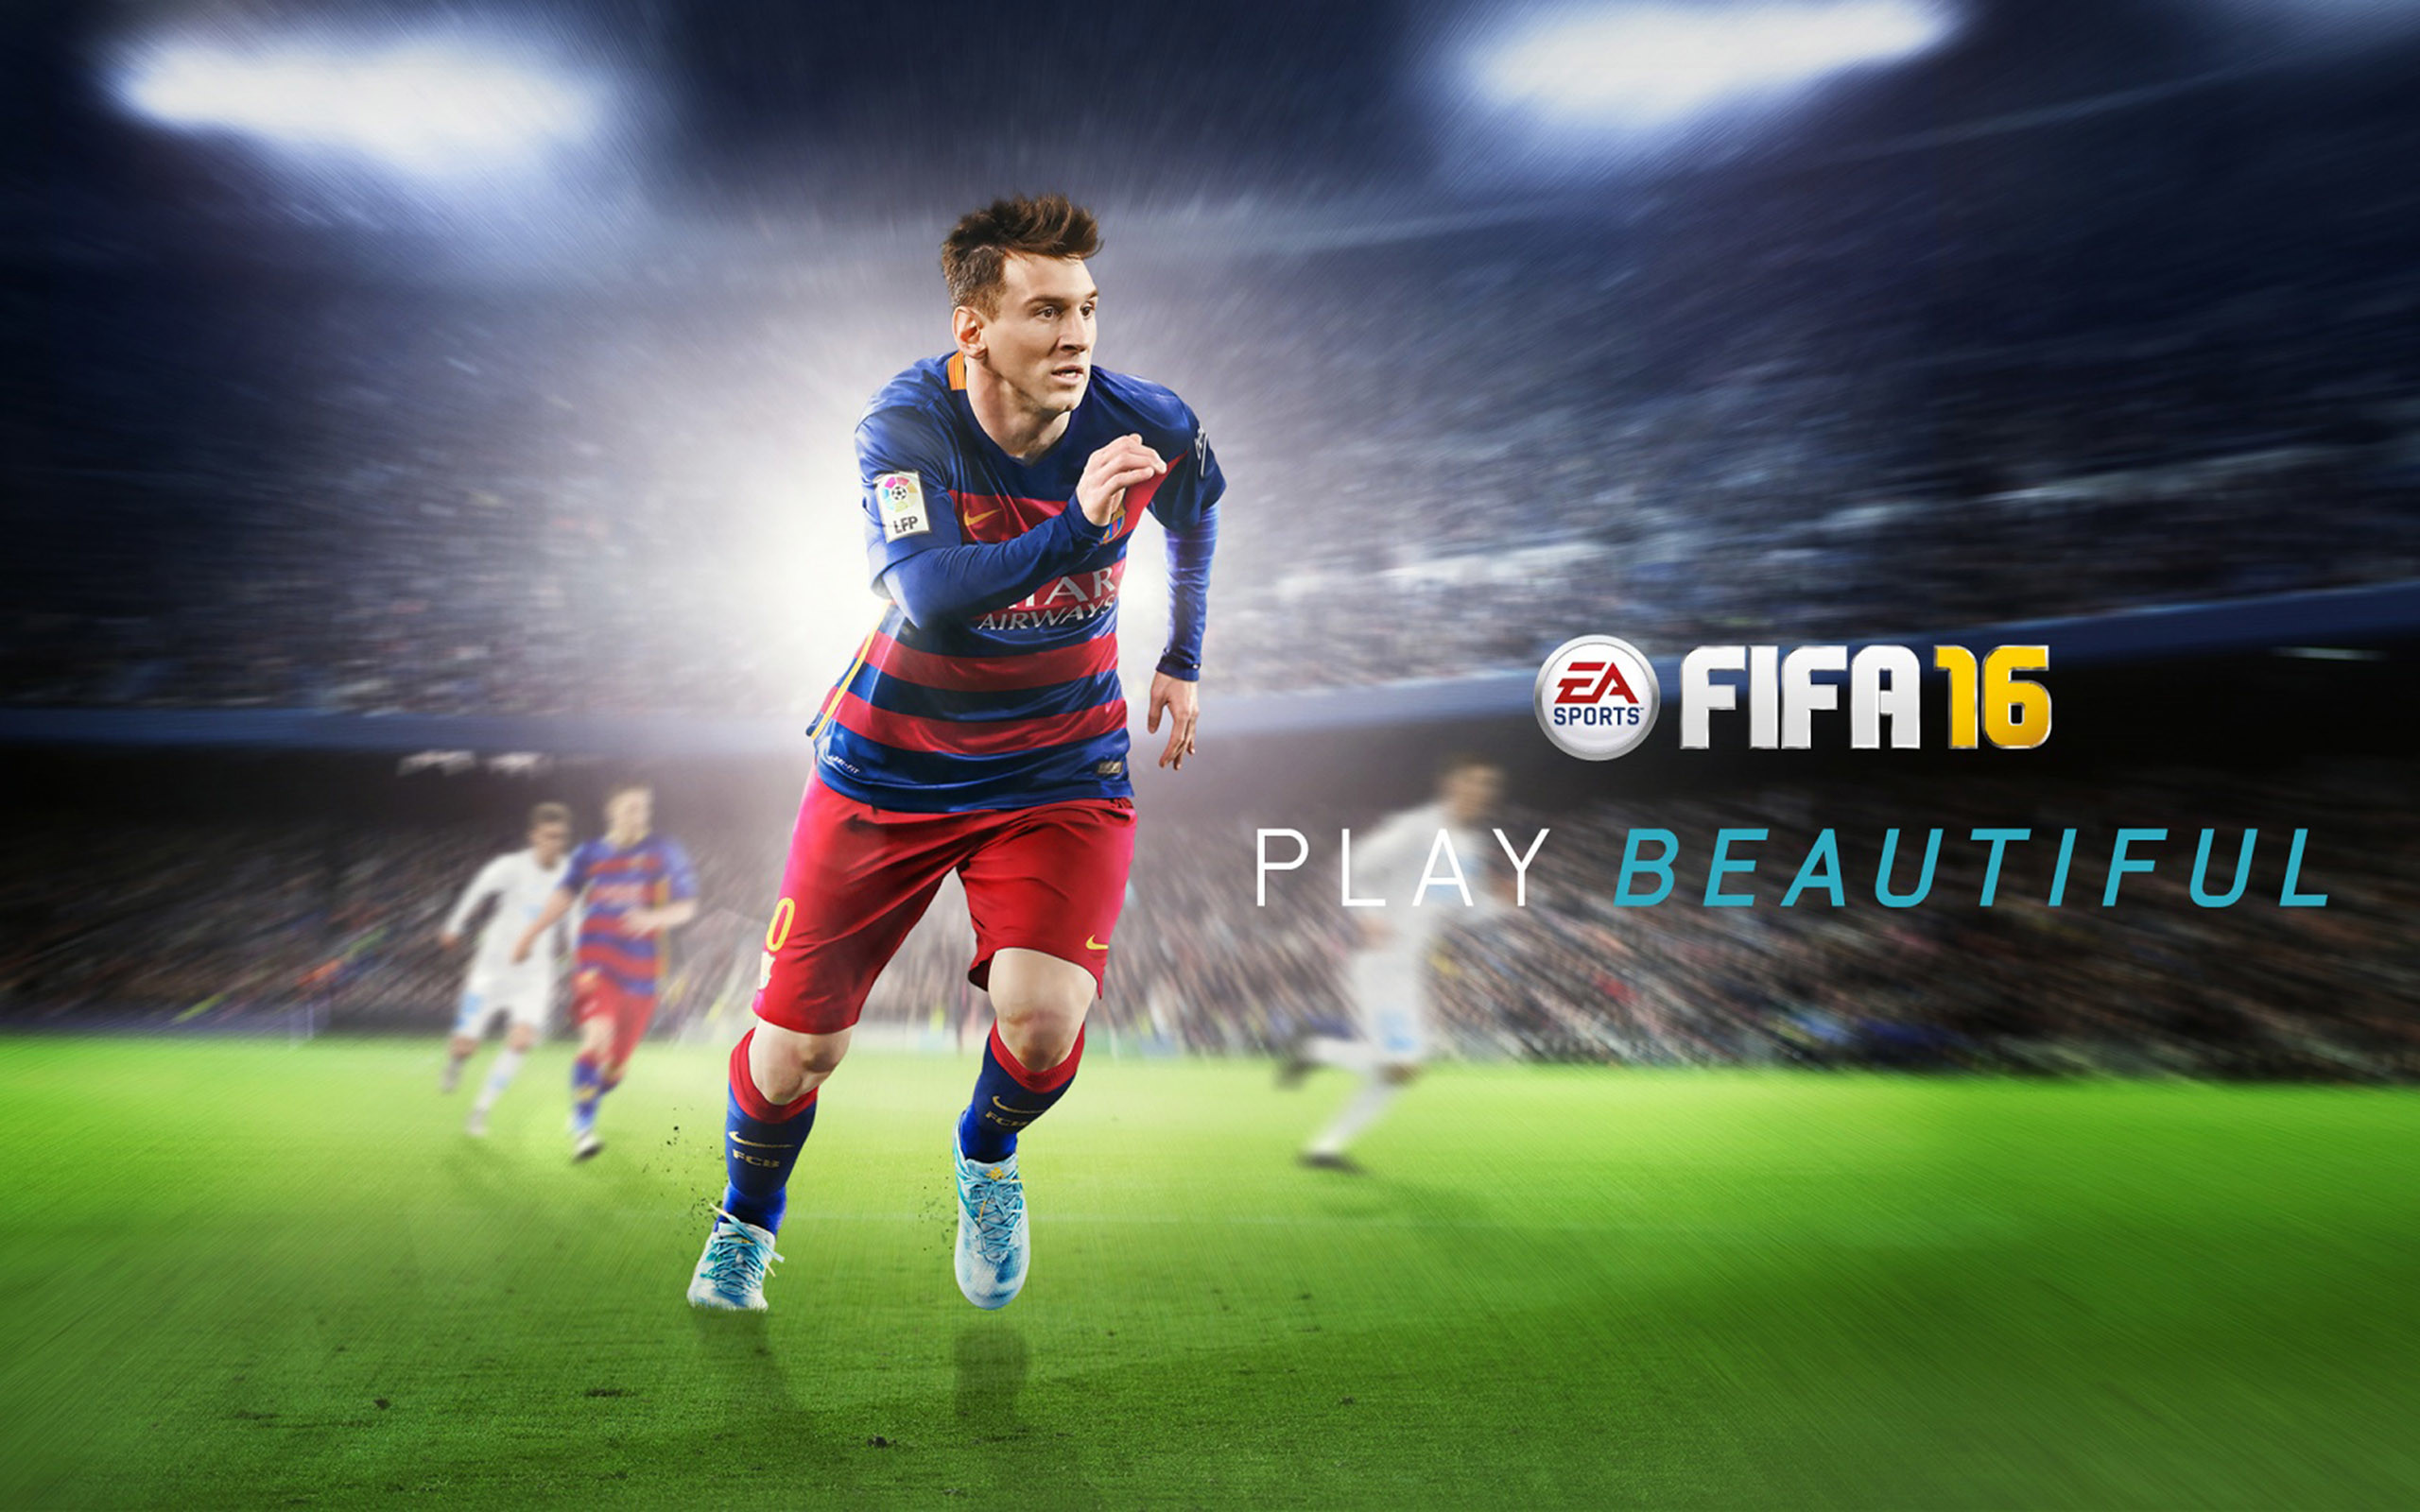 Messi Wallpapers 2018 Hd 85 Background Pictures